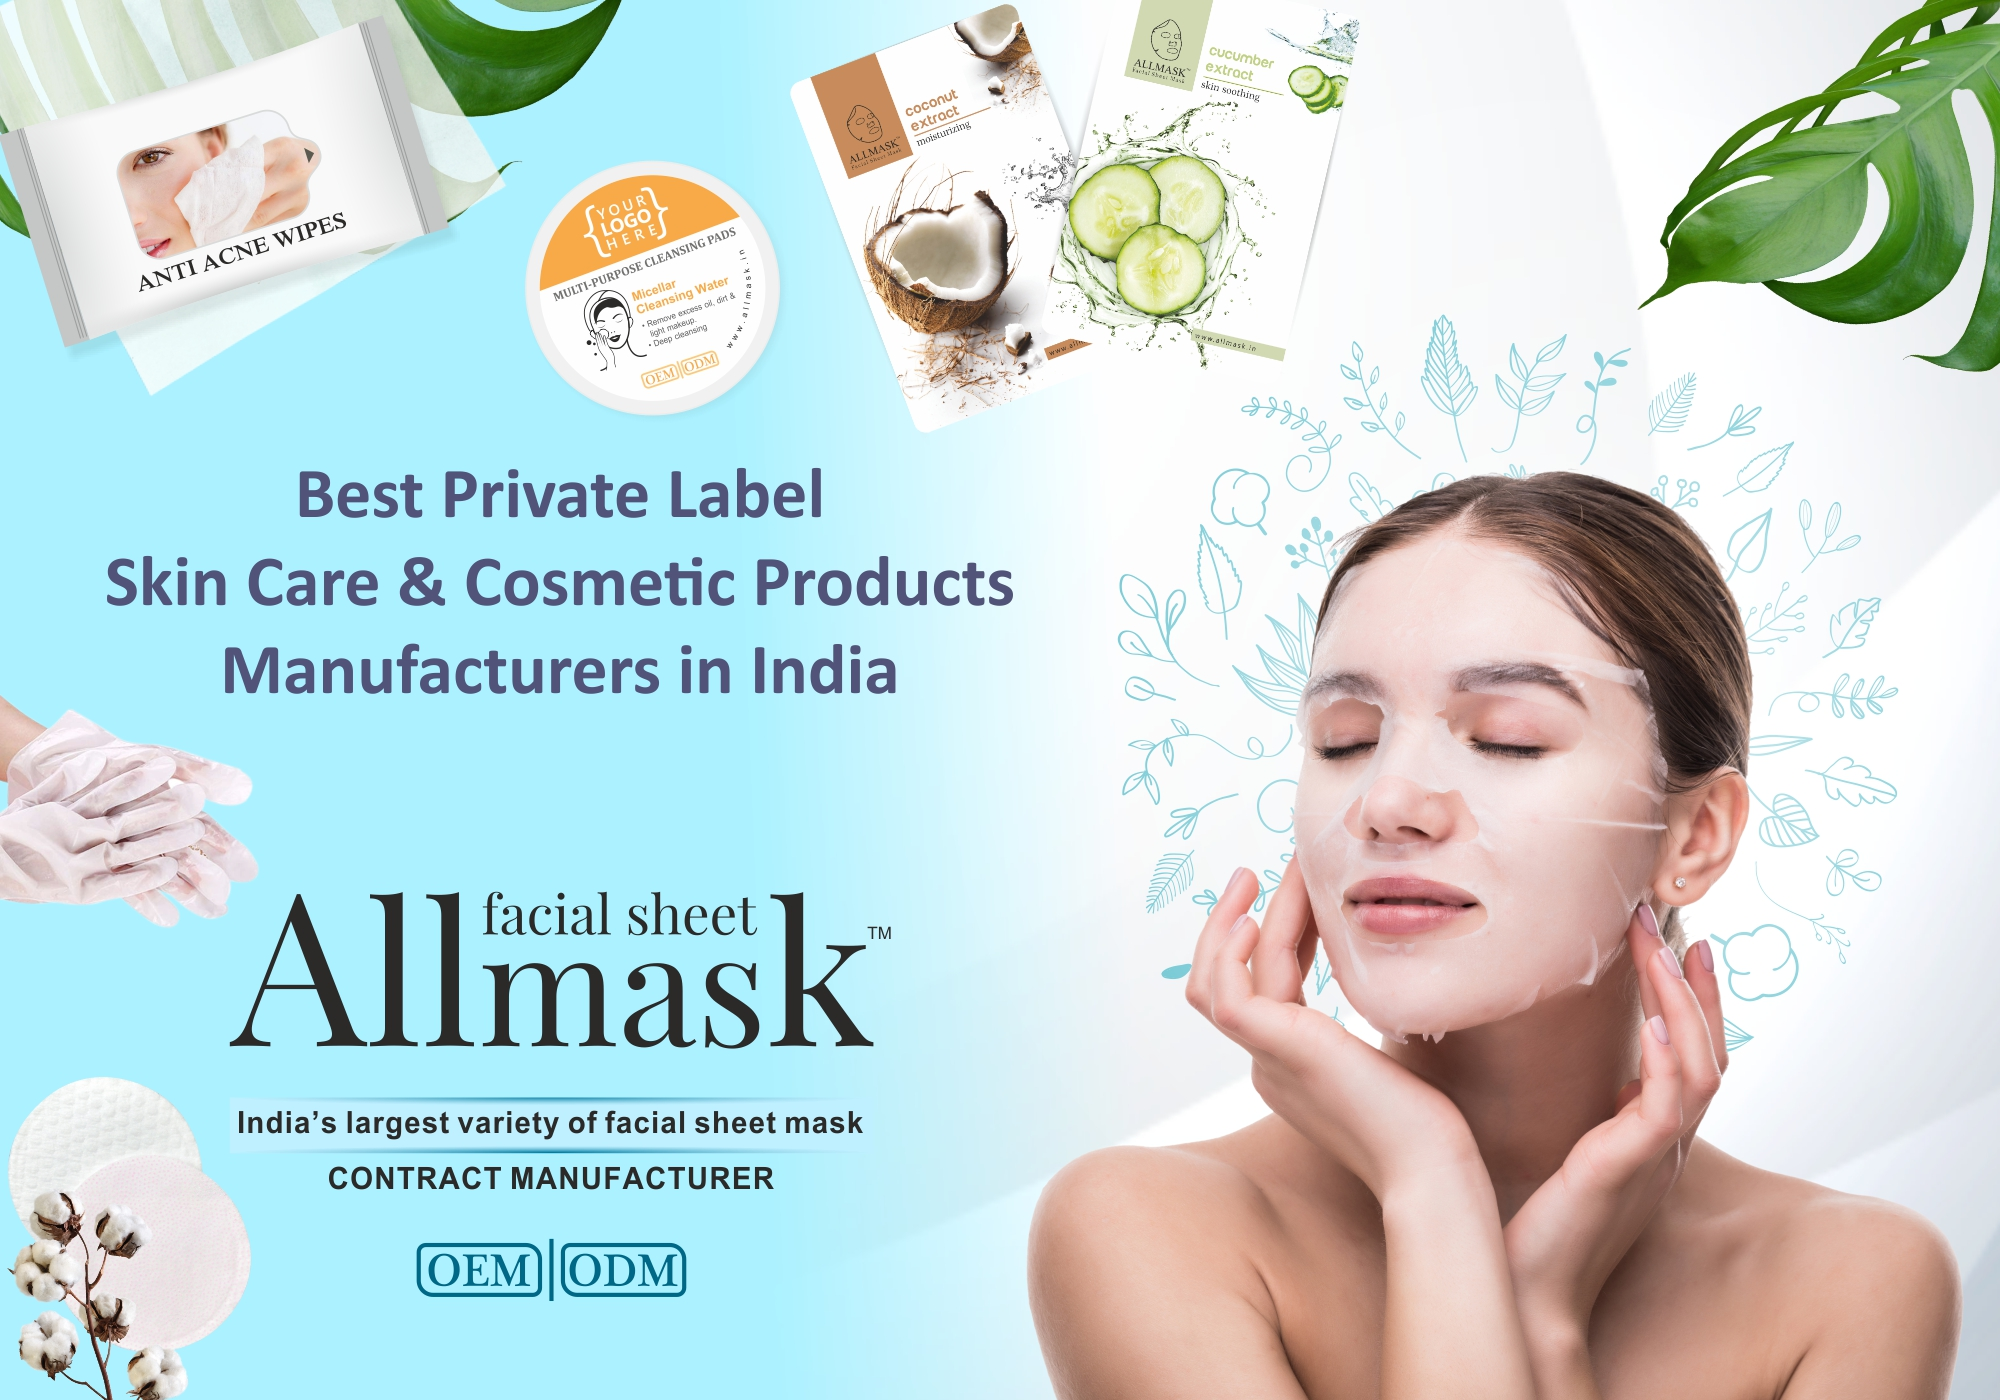 best-private-label-skin-care-&-cosmetic-products-manufacturers-in-india